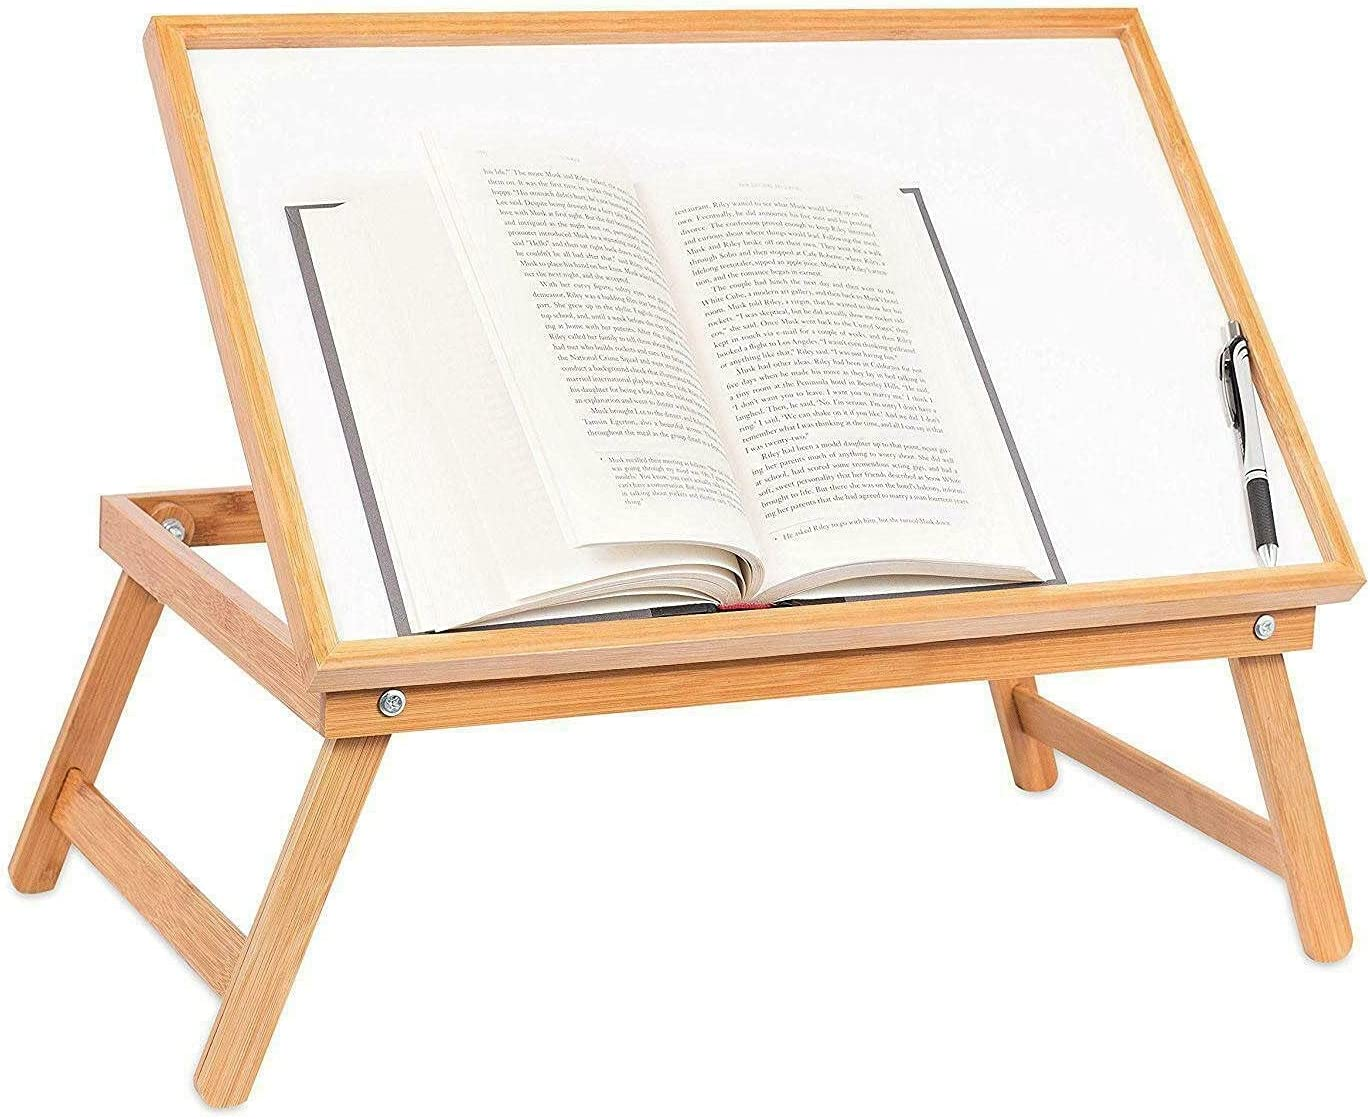 OFFicial Kosoree Adjustable Wood Bed Tray Table Serving Sales of SALE items from new works Folding Desk Lap